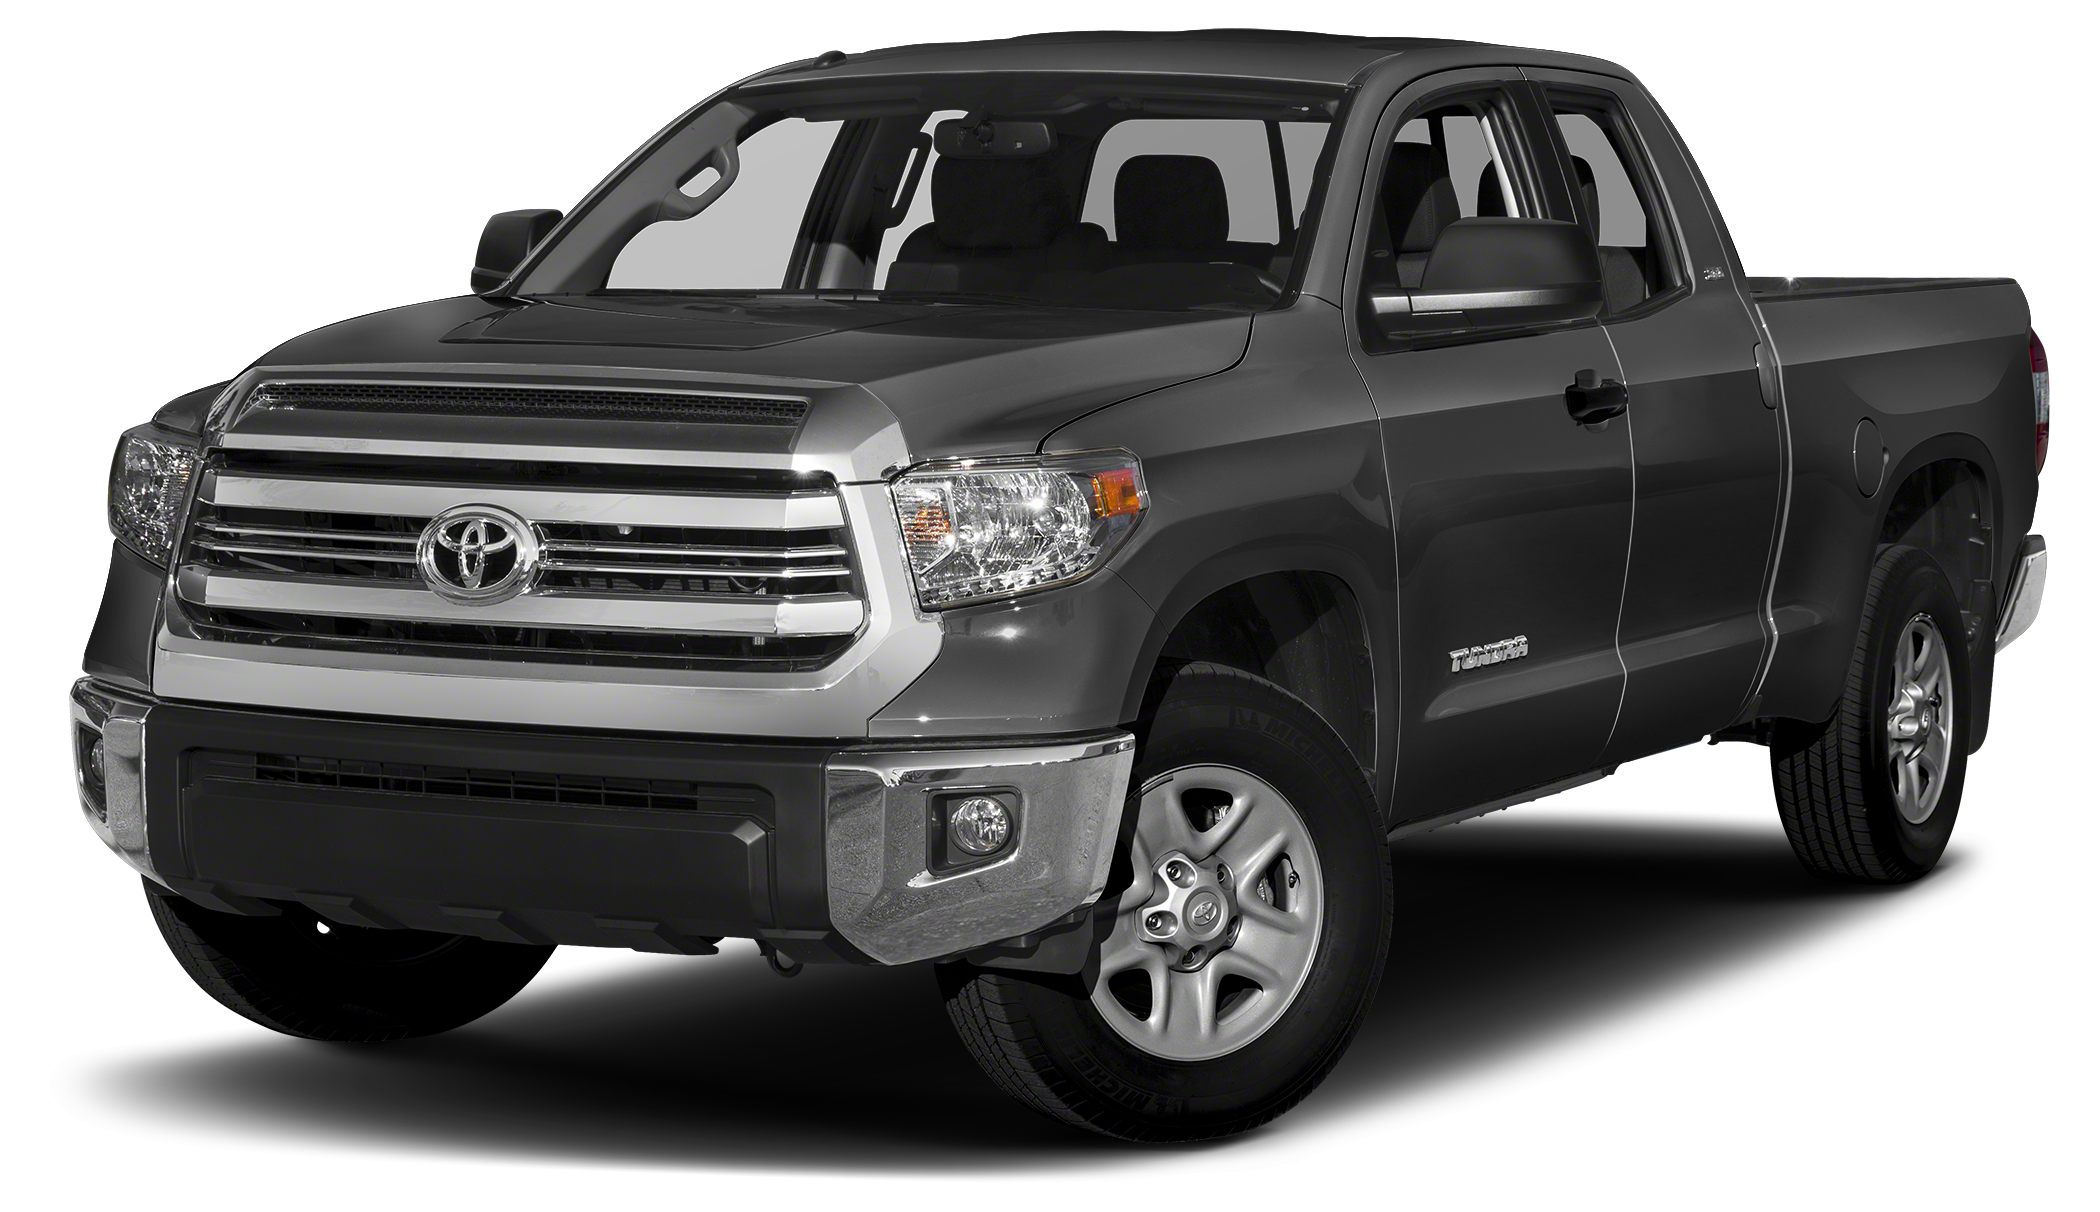 2014 Toyota Tundra SR5 SR5 trim iPodMP3 Input Satellite Radio CD Player Bluetooth Trailer Hi